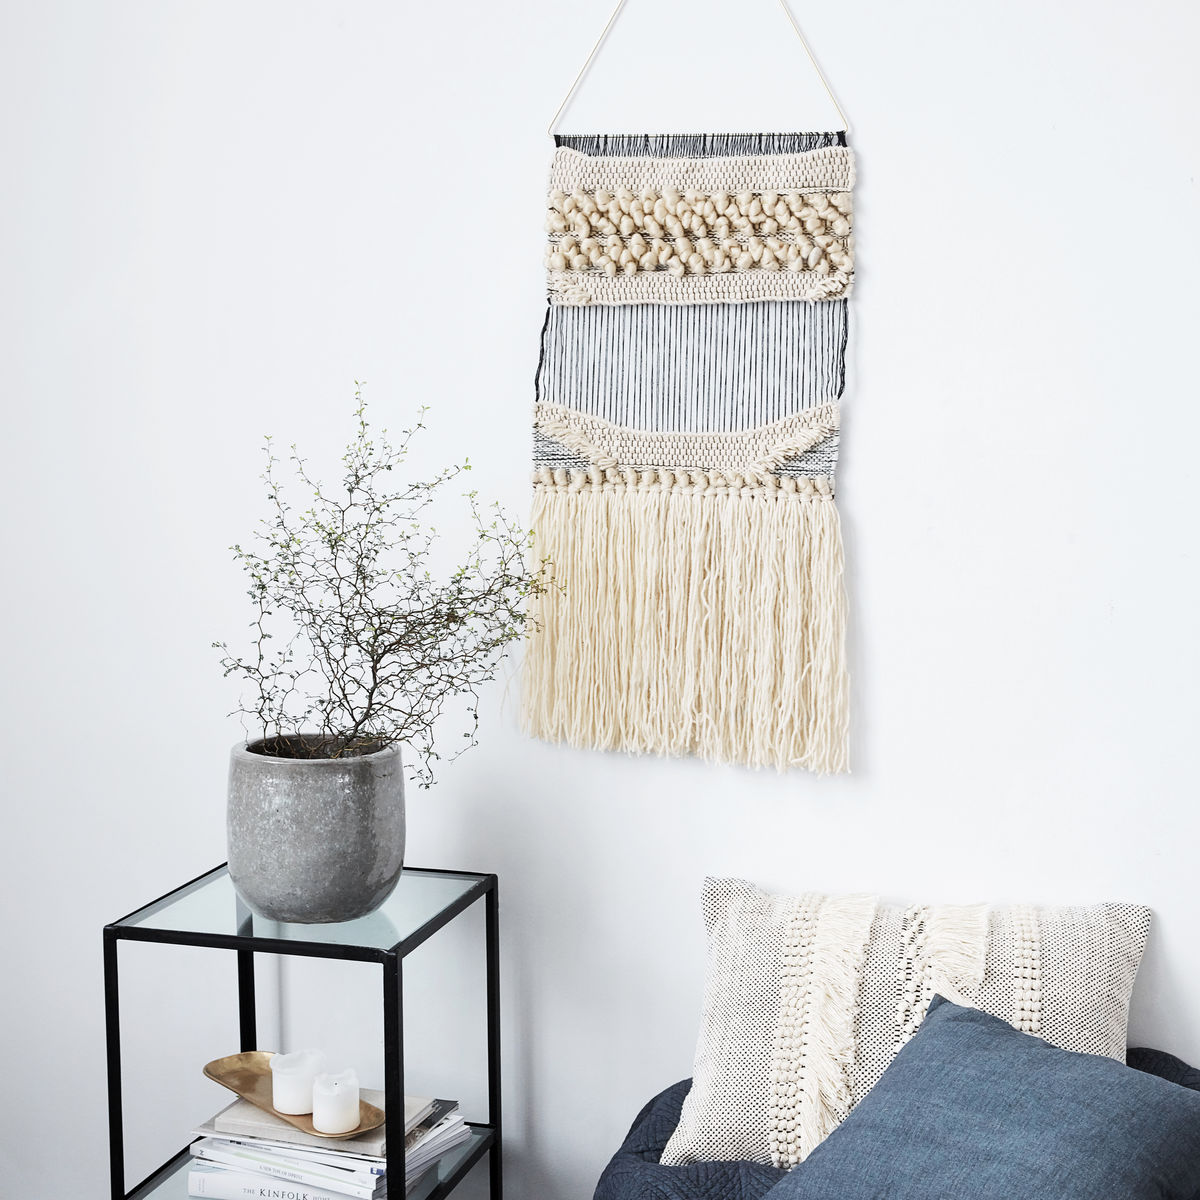 Plen wallhanging lifestyle